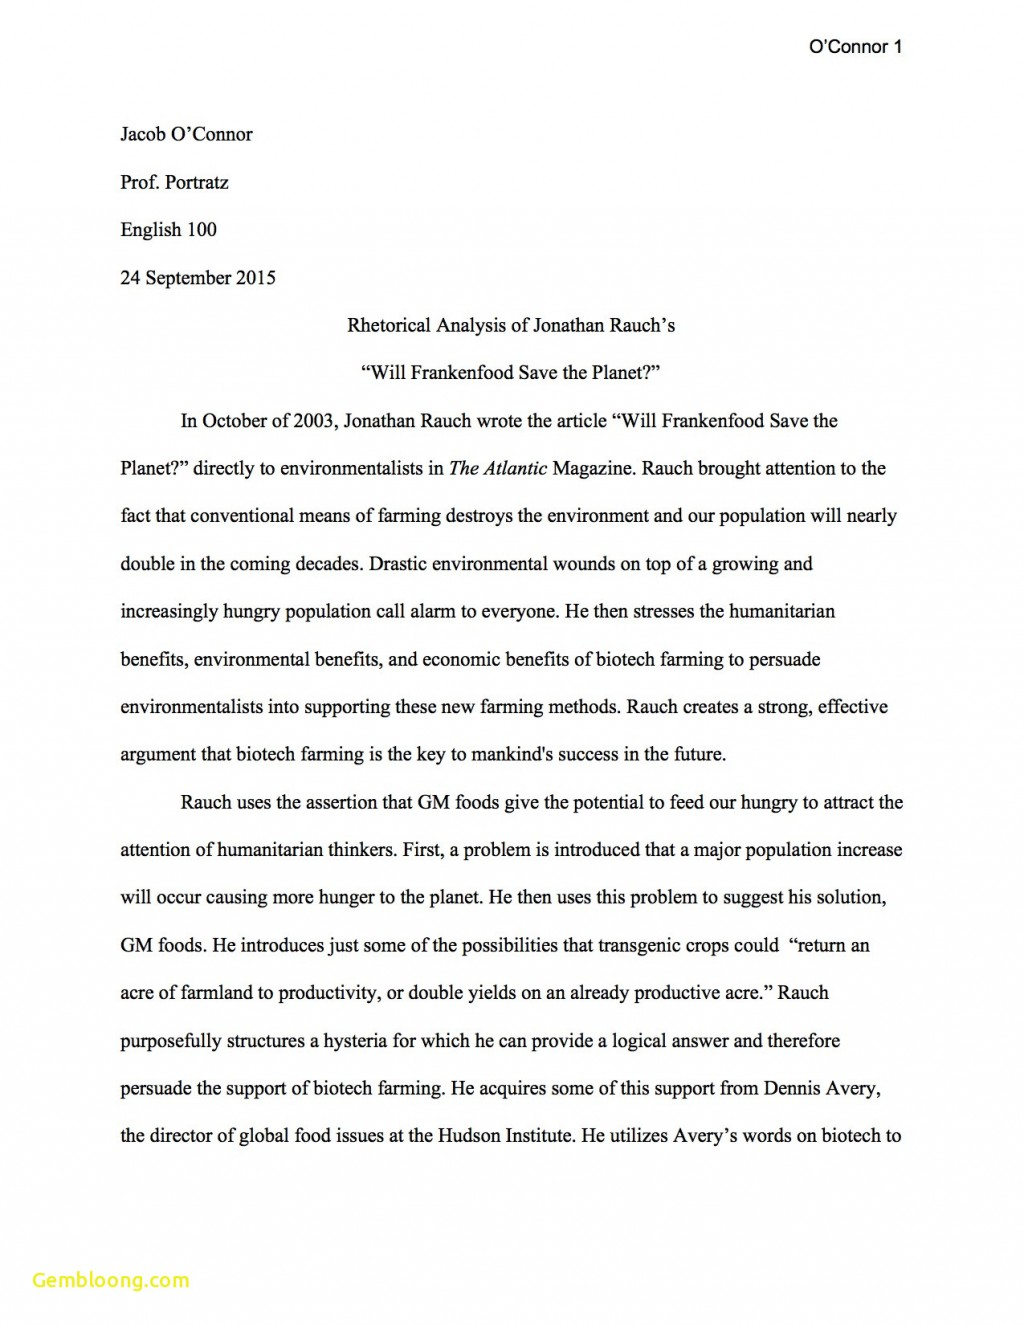 006 Essay Example Reflective Format Awesome Sample Of English Paper Help When You Say I Need Phenomenal Self-reflective Week 2 Guidelines With Scoring Rubric Apa Large